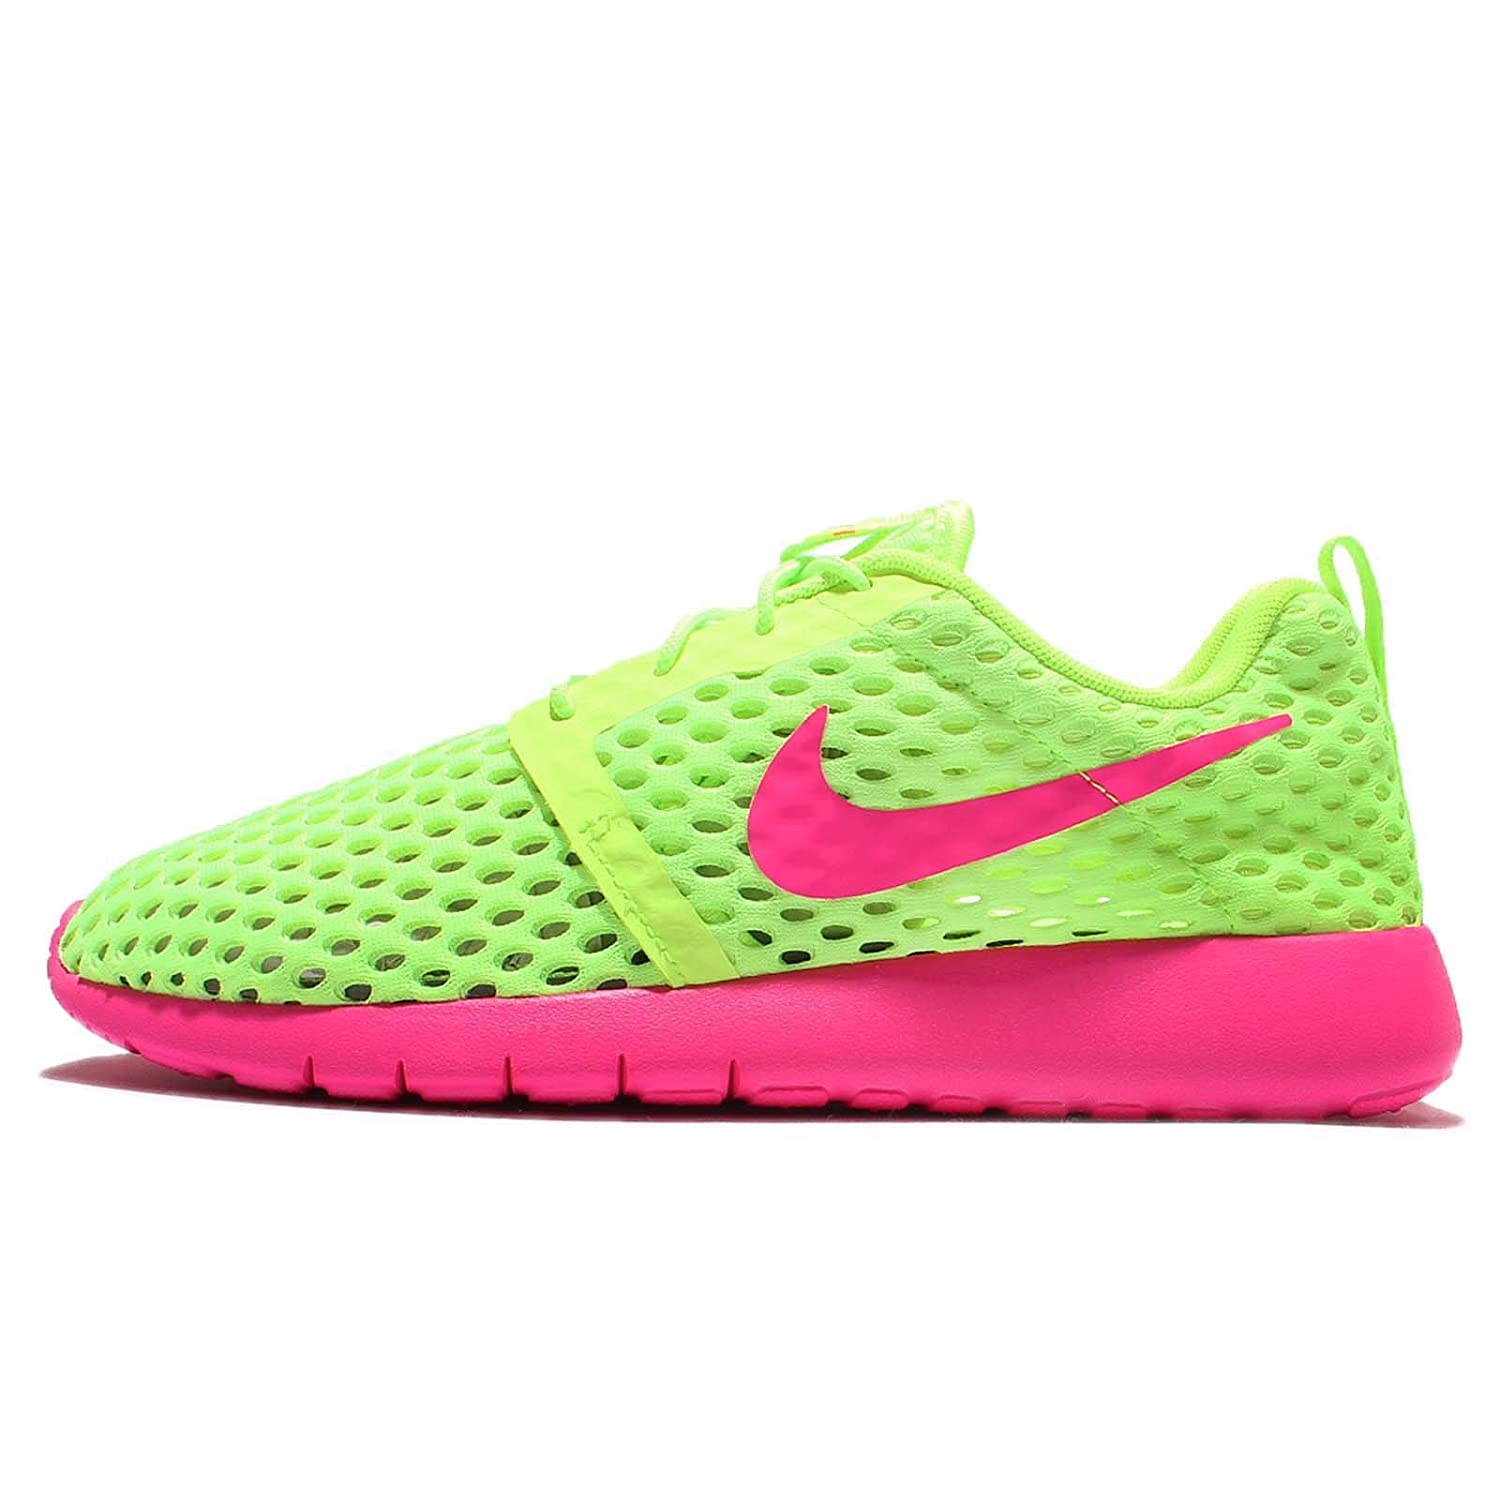 promo code a6f68 51b3f Amazon.com | Nike Roshe Flight Weight (GS) Running Shoes ...